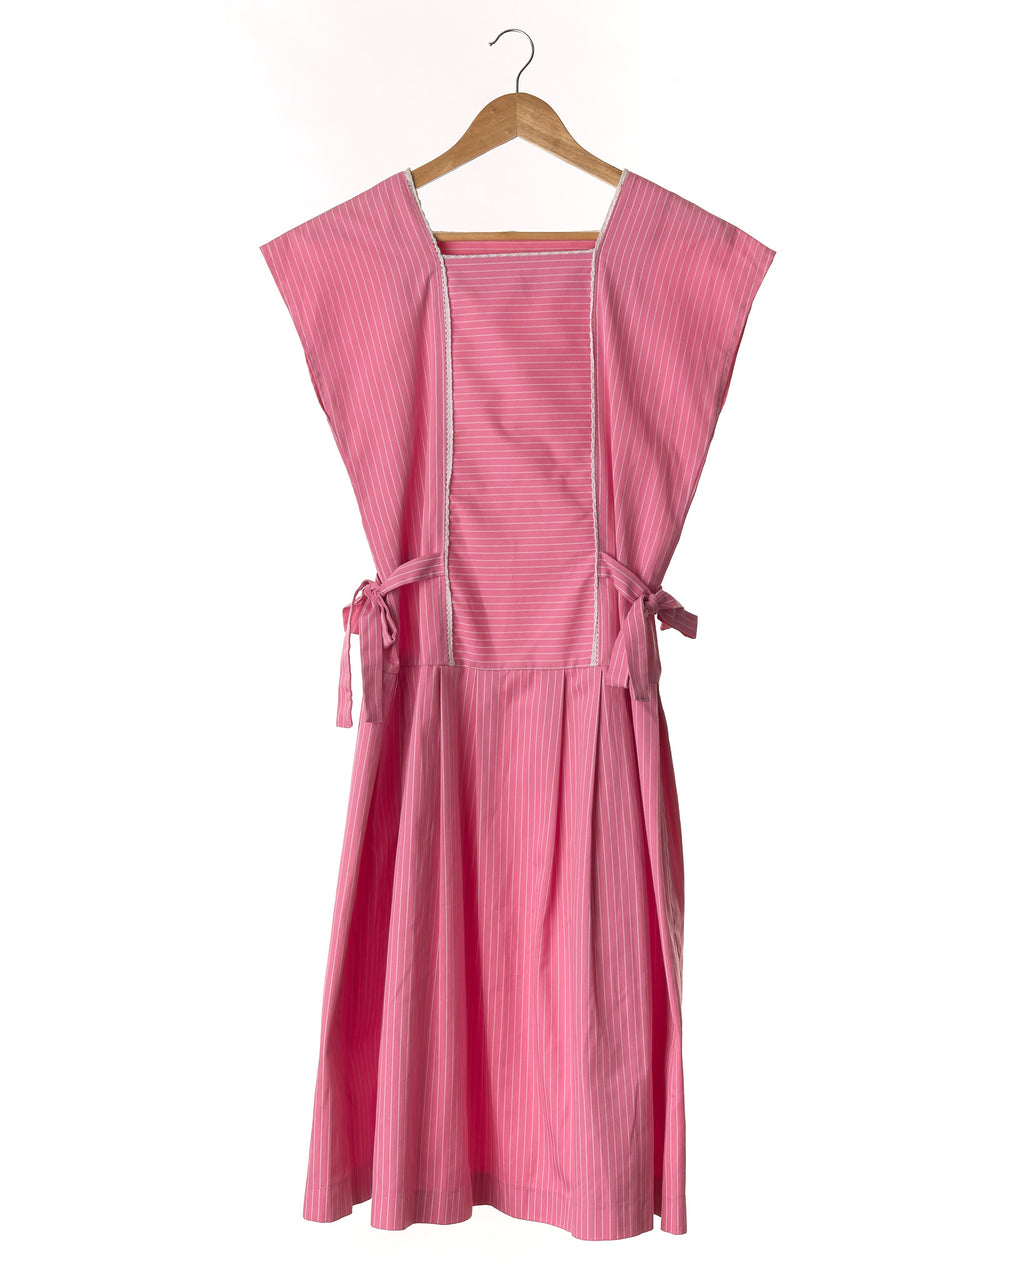 Bubblegum Pink Vintage Midi Dress